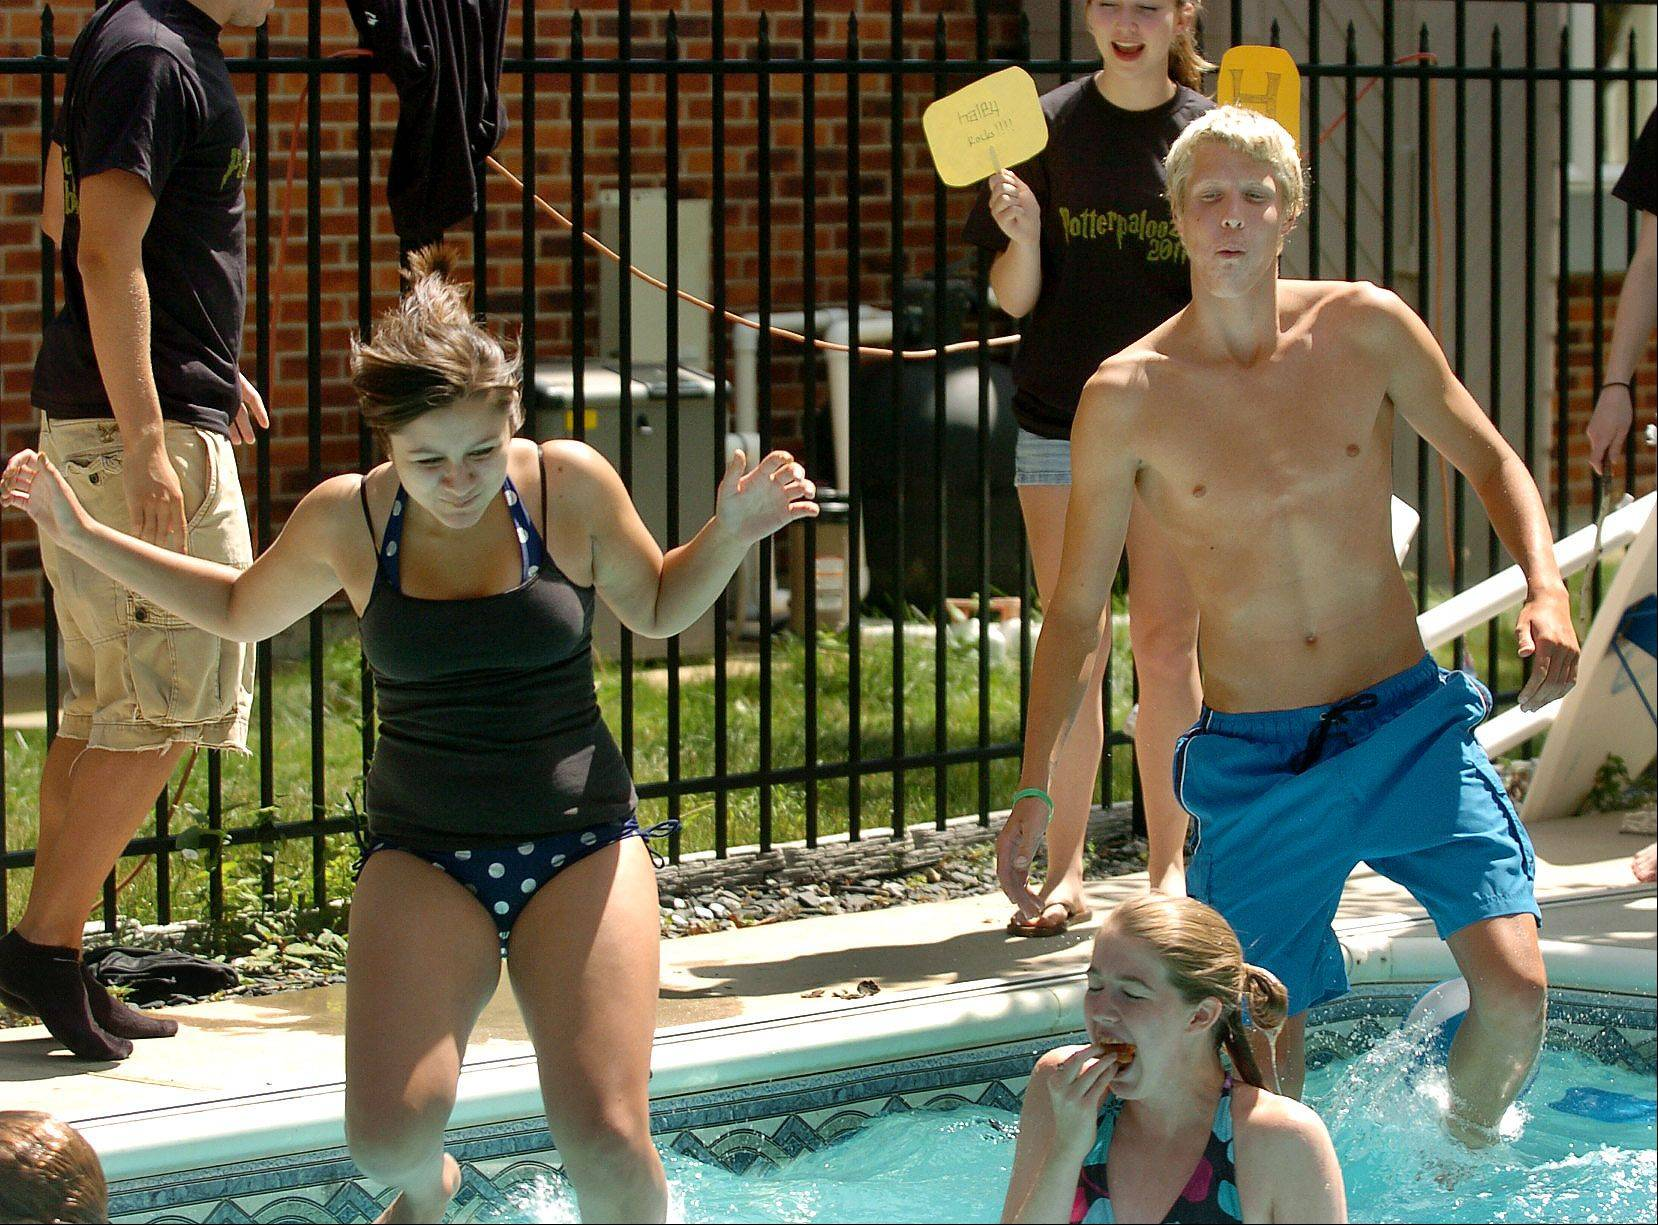 Triwizard champions from left, Asha Bazil, Haley Shoaf and Dustin Anderson jump in the pool after eating Gillyweed to complete the second task of finding items on the bottom.